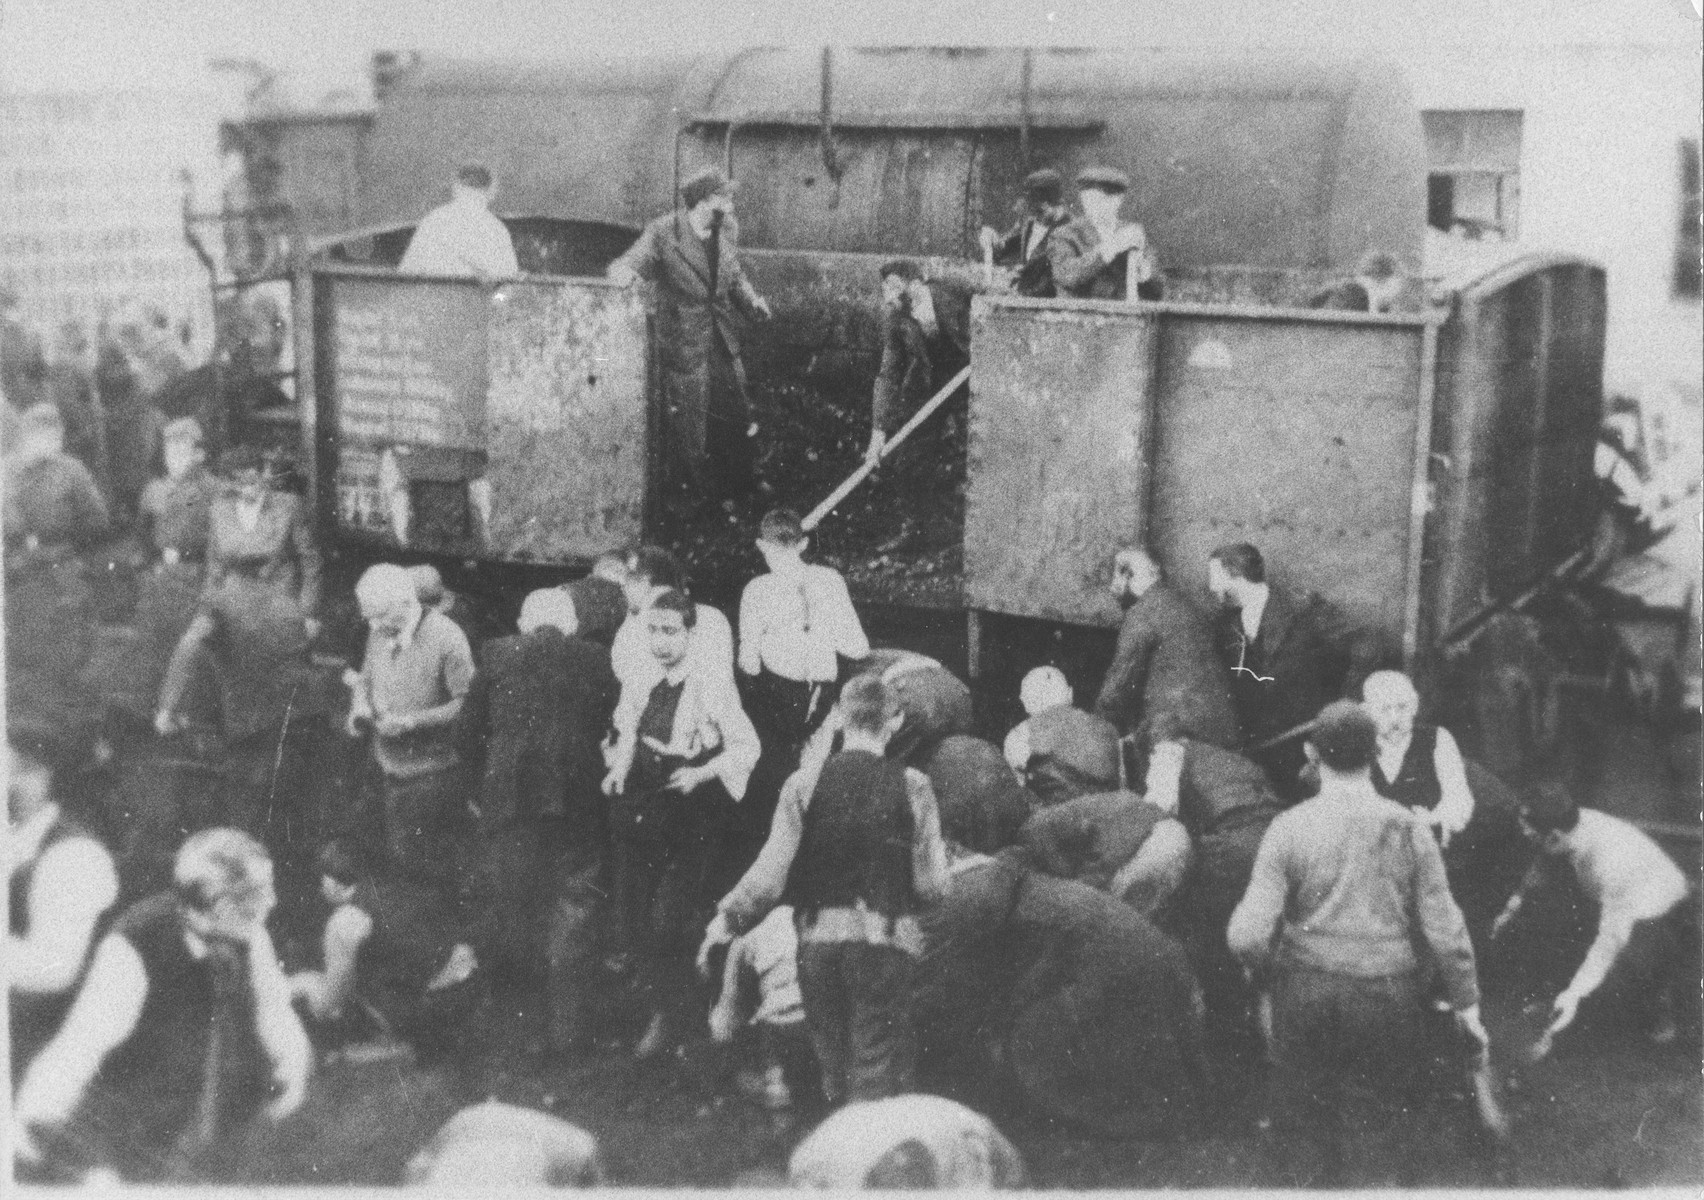 Jewish men at forced labor unload a wagon laden with coal.